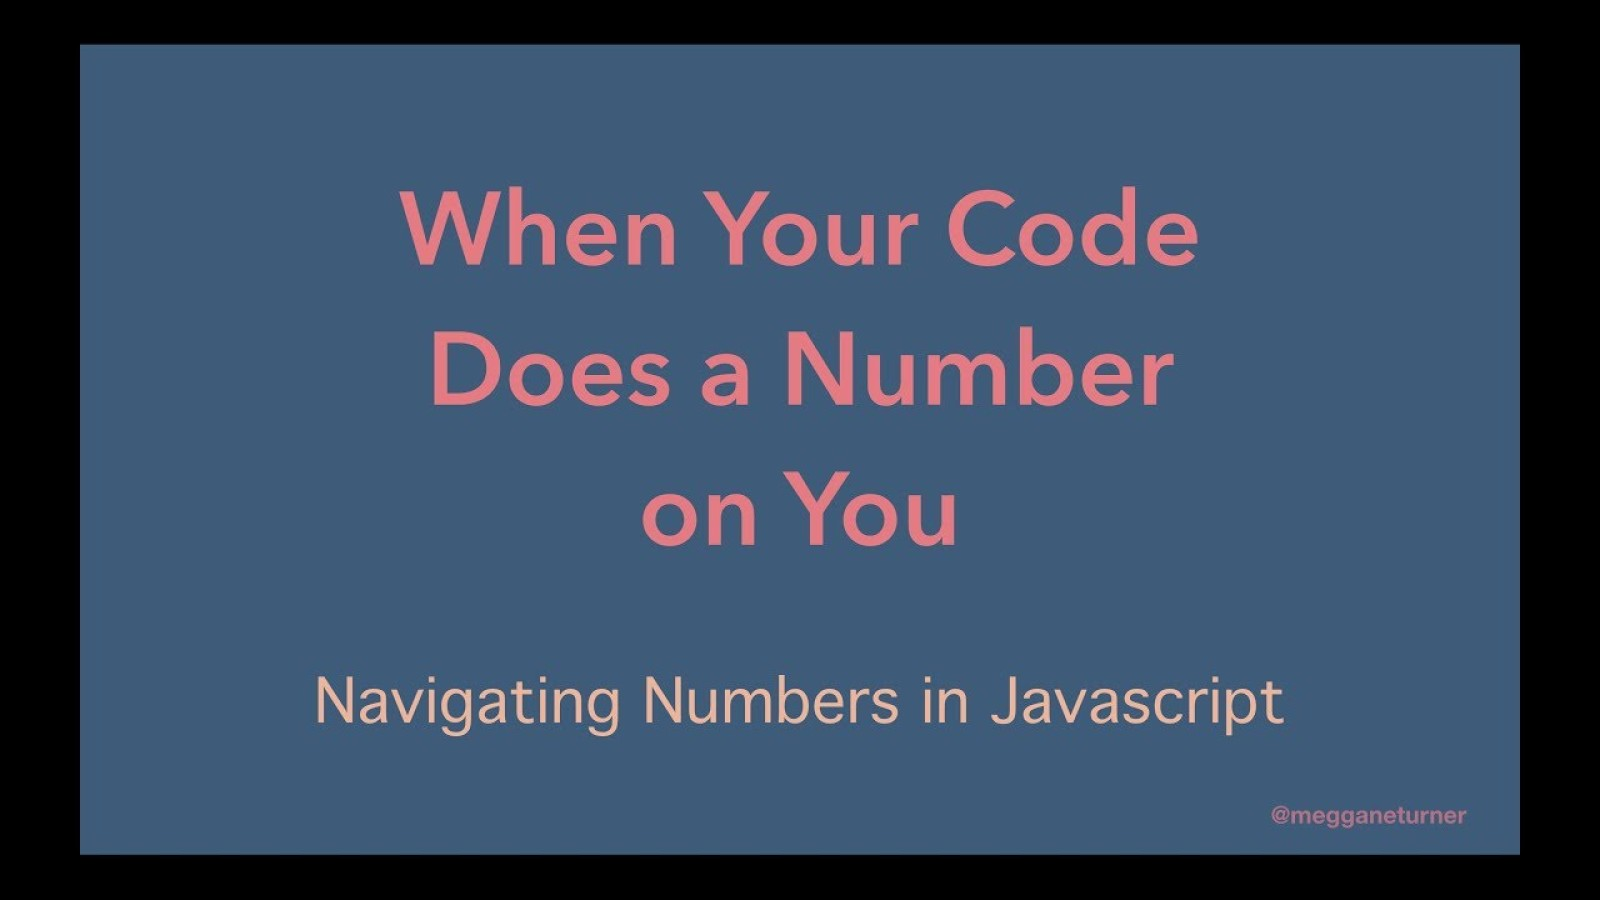 When your code does a number on you: Navigating numbers in JavaScript